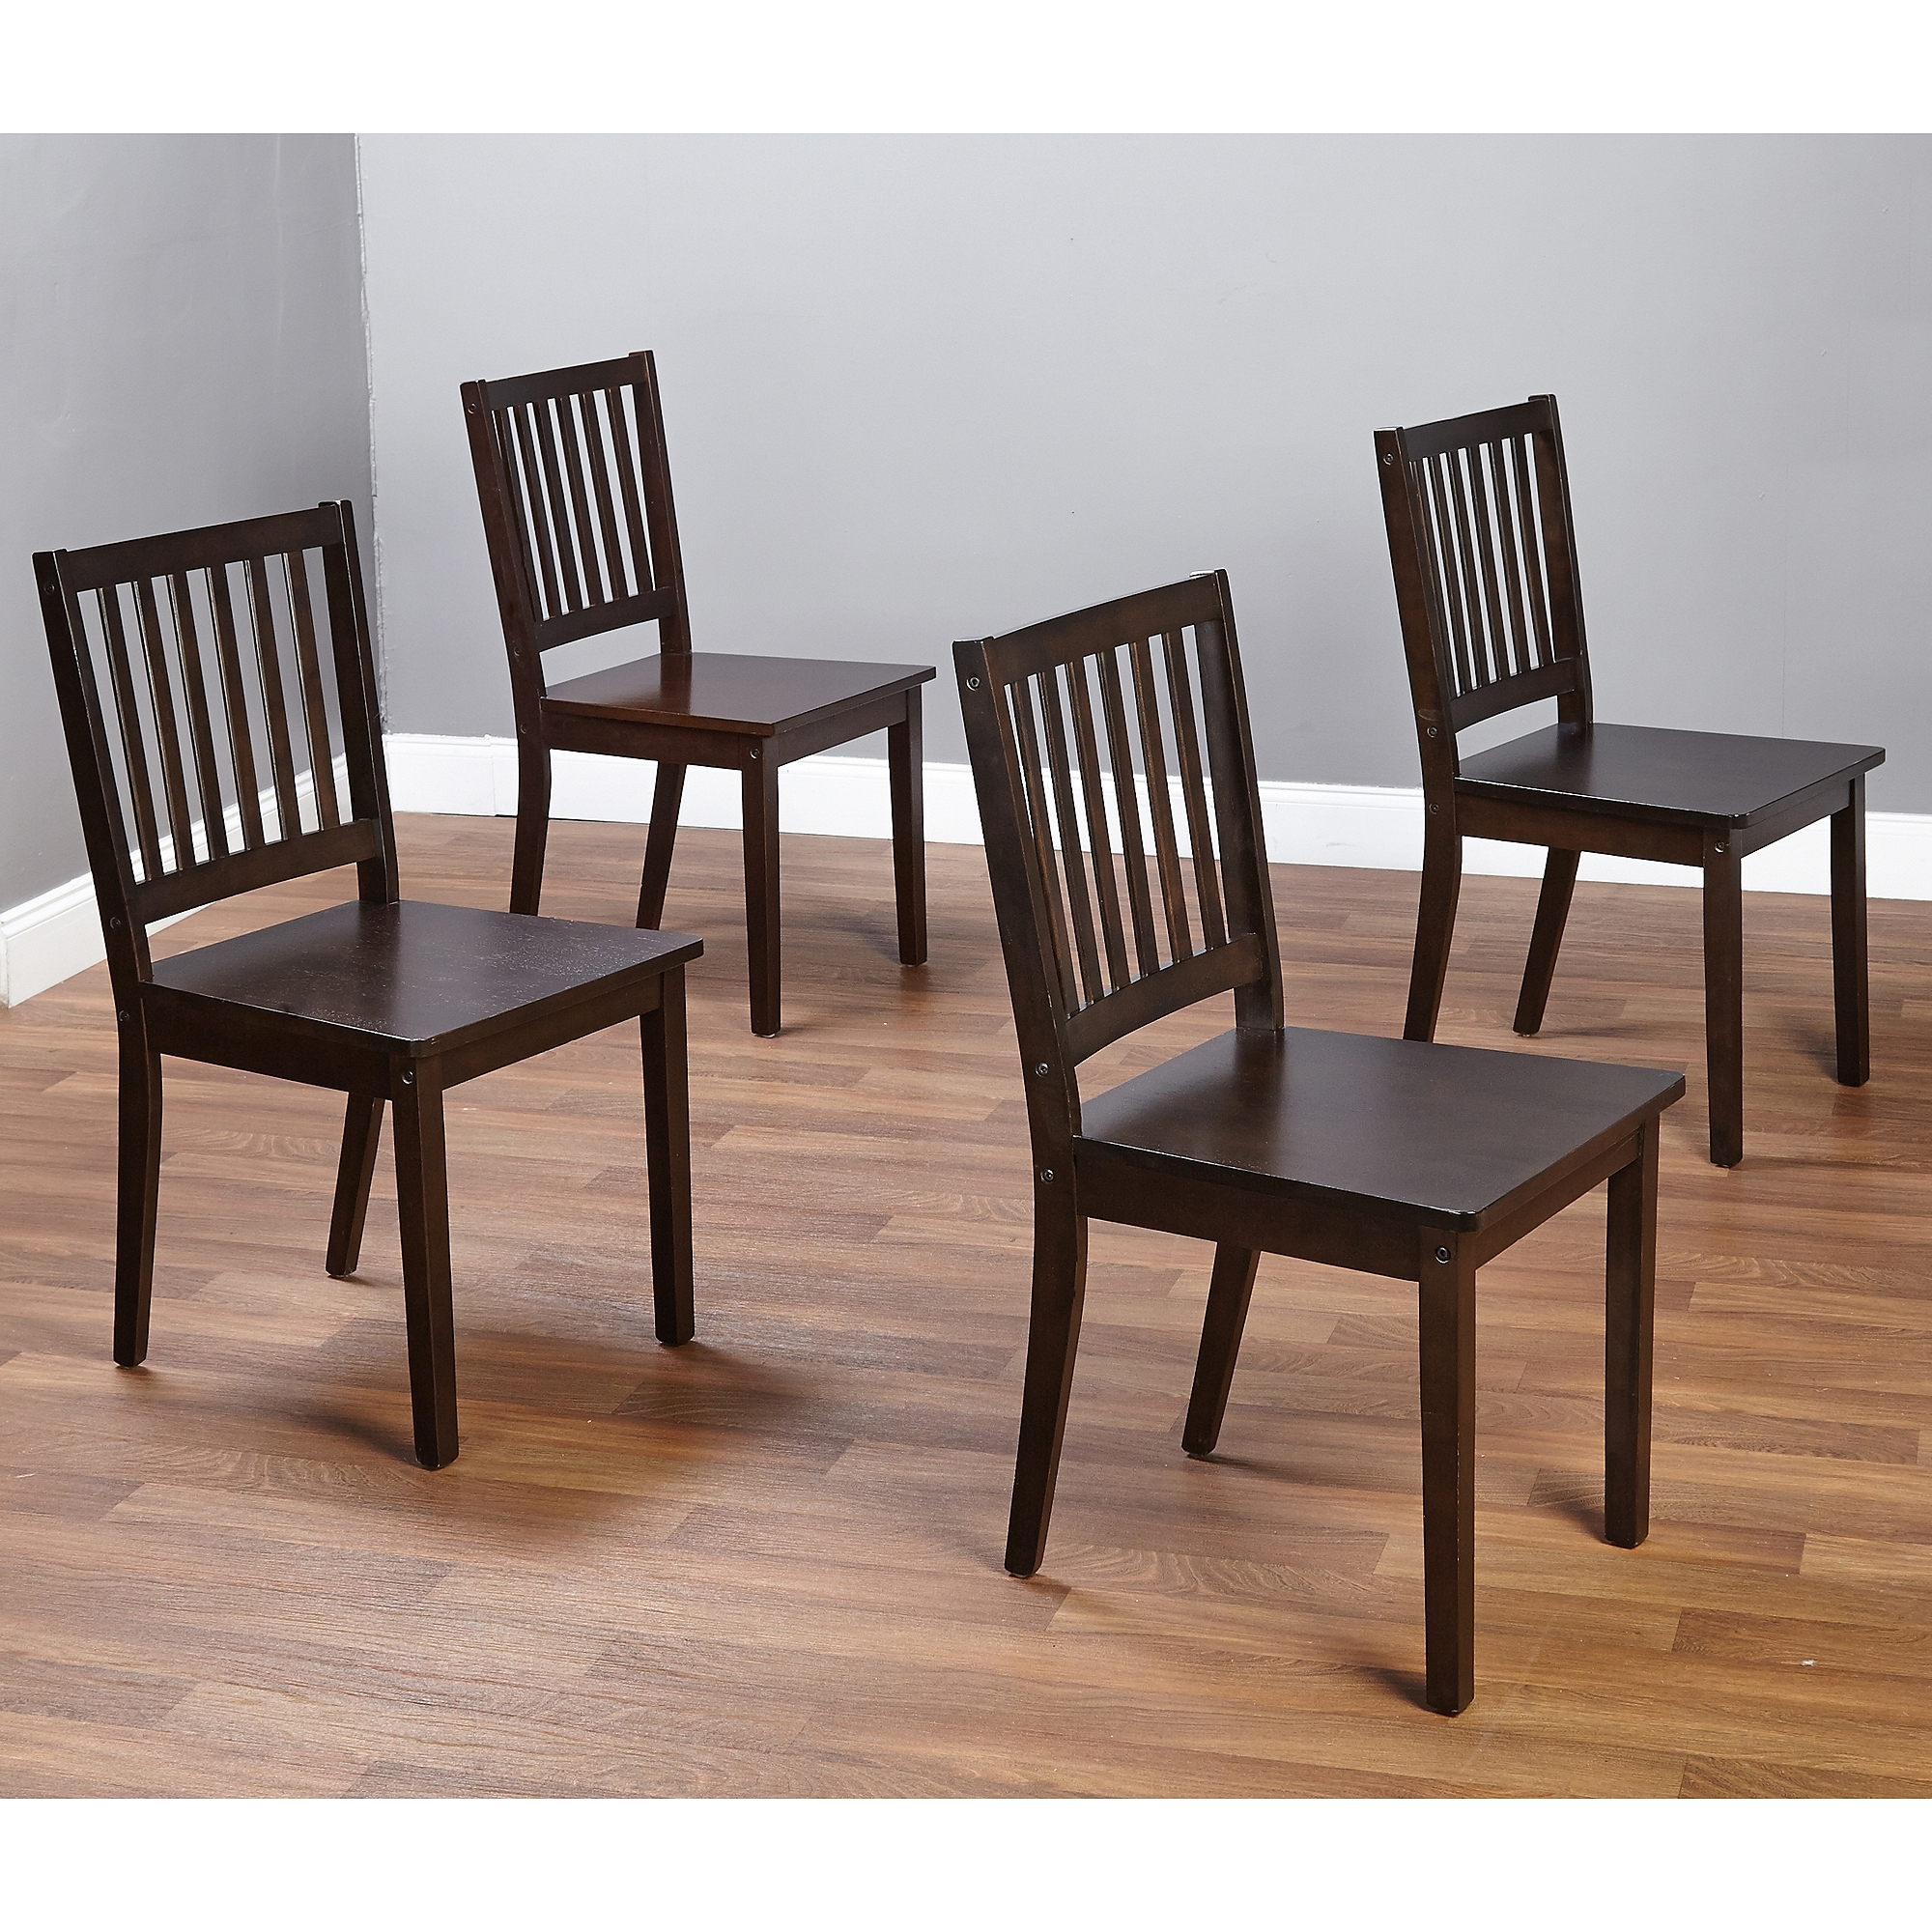 Black Dining Chairs With Regard To Fashionable Shaker Dining Chairs, Set Of 4, Black – Walmart (Gallery 16 of 25)